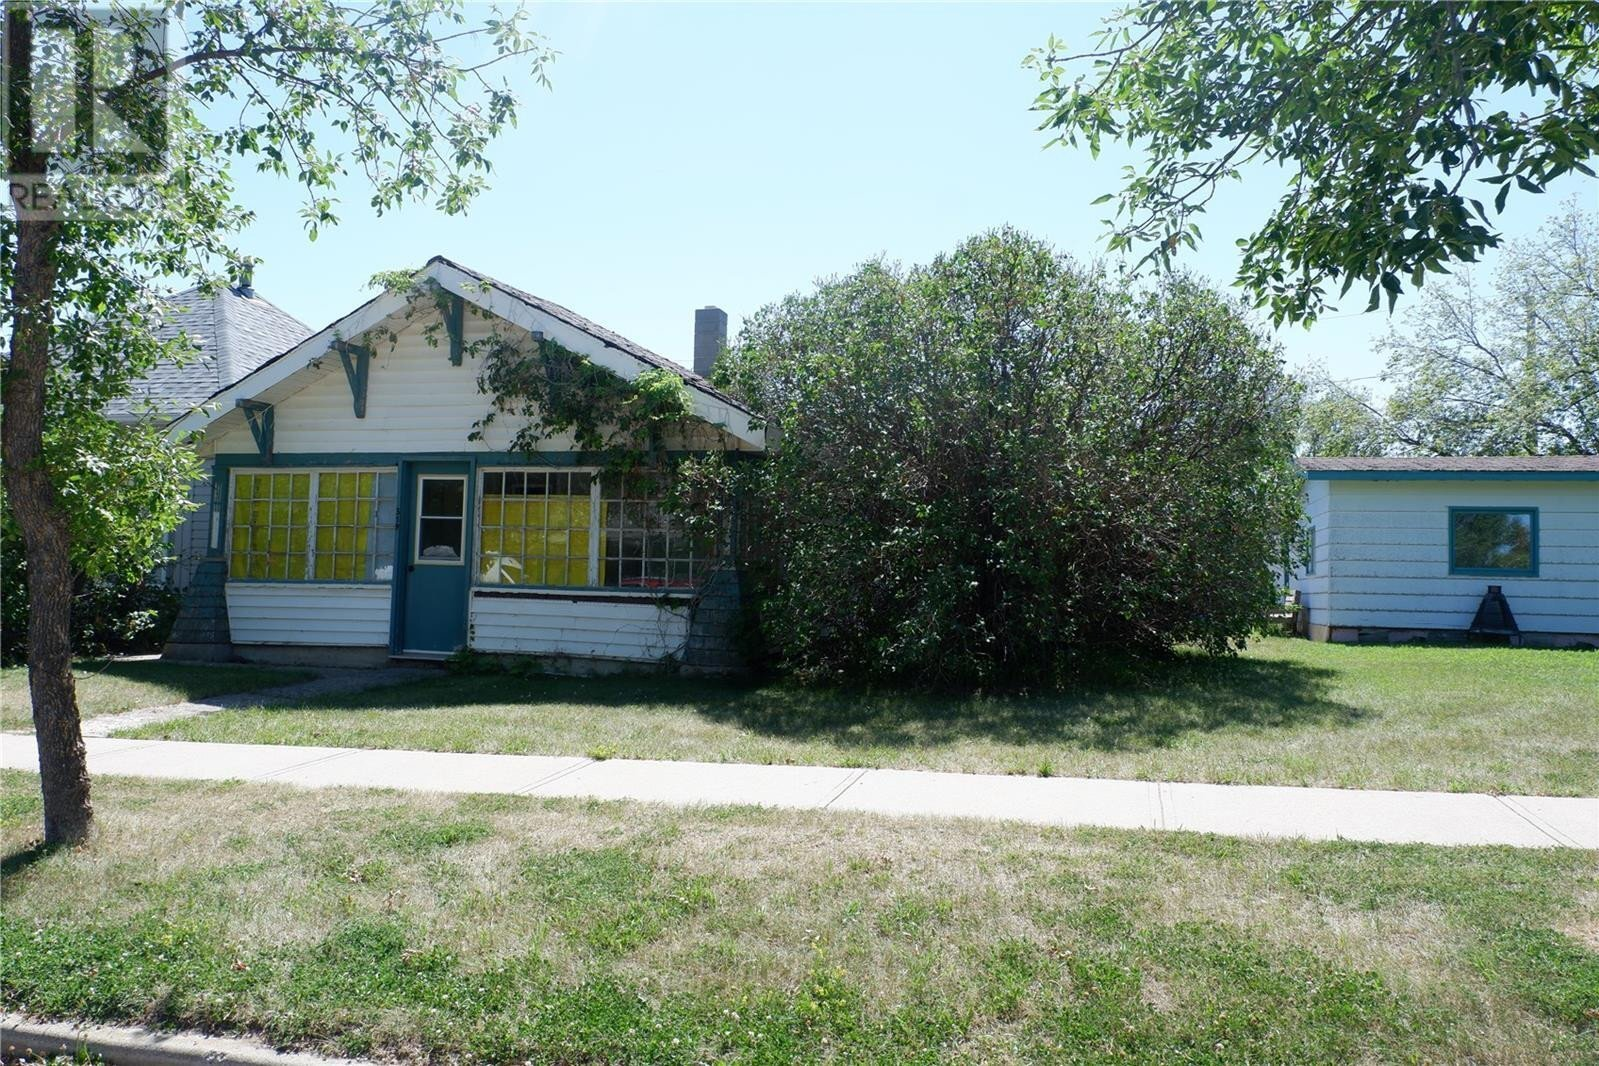 House for sale at 319 5th Ave W Assiniboia Saskatchewan - MLS: SK819764